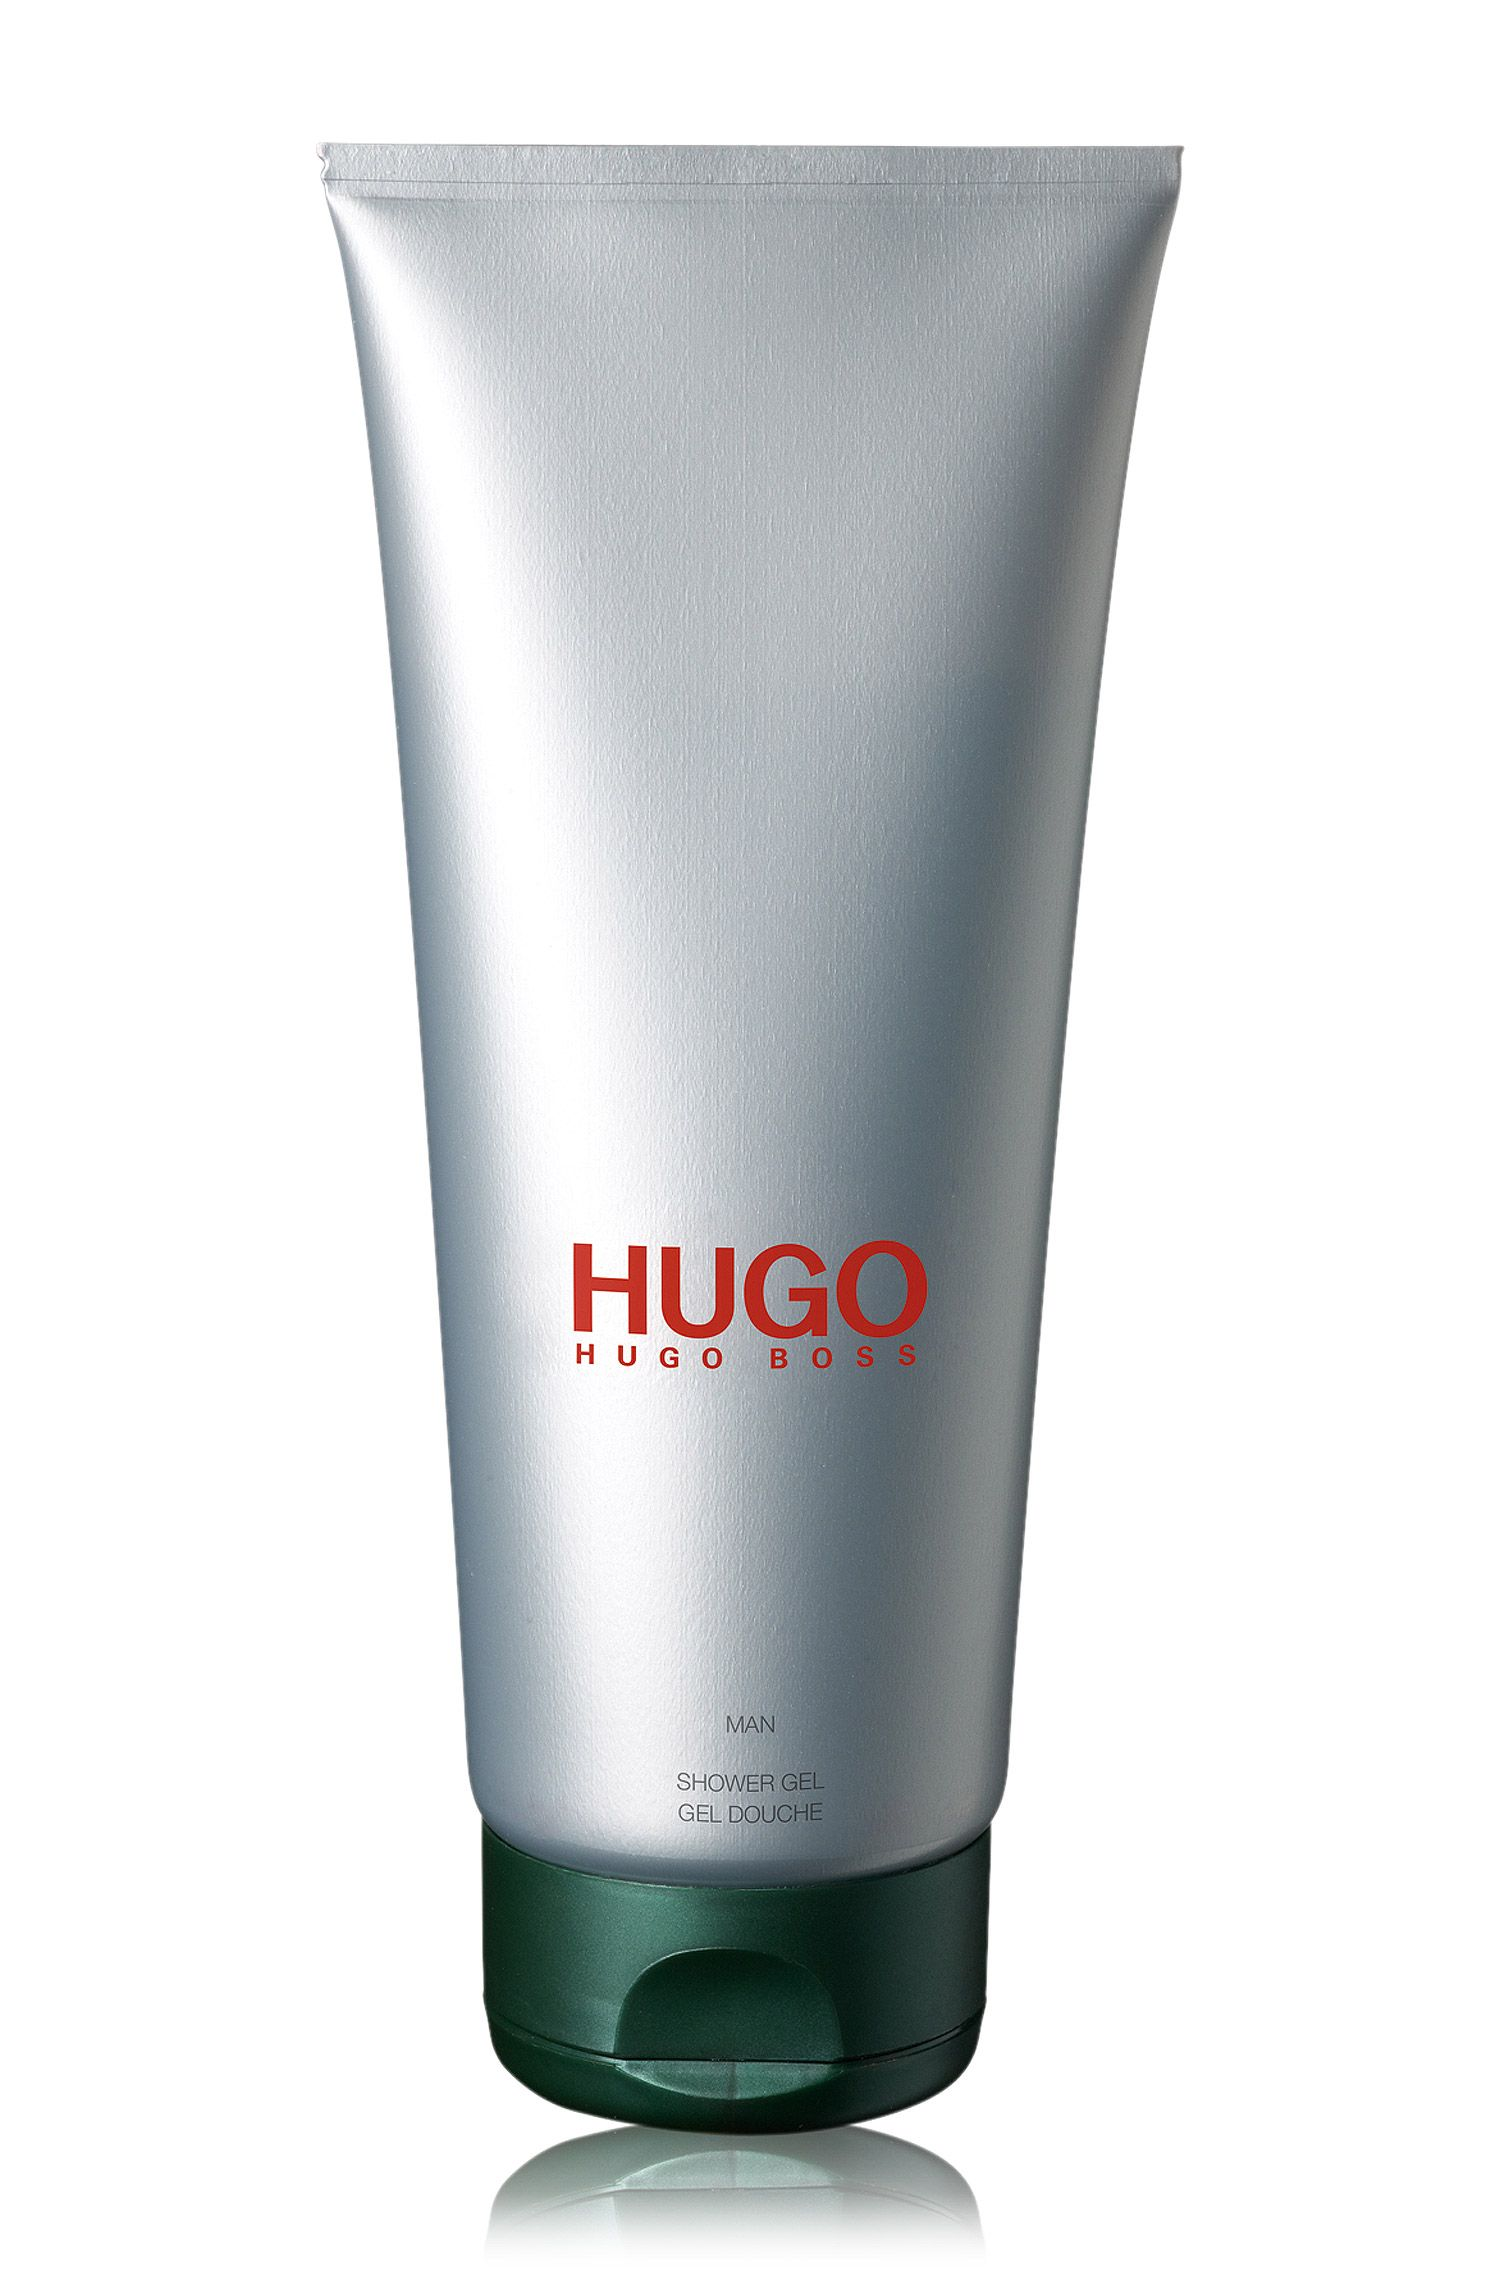 Gel douche HUGO Man 200 ml